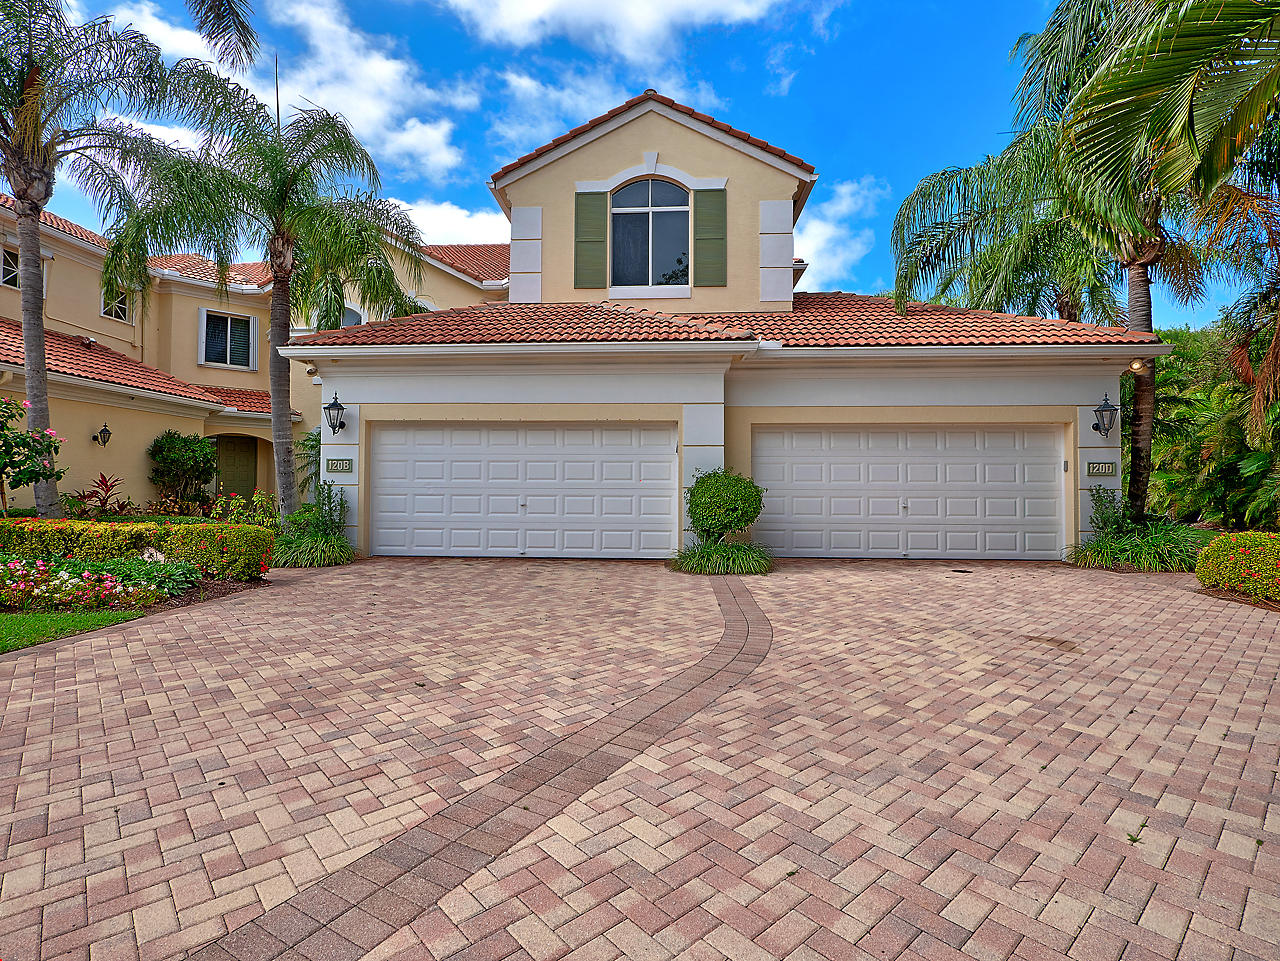 120 Palm Bay Drive, Palm Beach Gardens, Florida 33418, 3 Bedrooms Bedrooms, ,3 BathroomsBathrooms,Condo/Coop,For Sale,PALM BAY NORTH,Palm Bay,2,RX-10421174